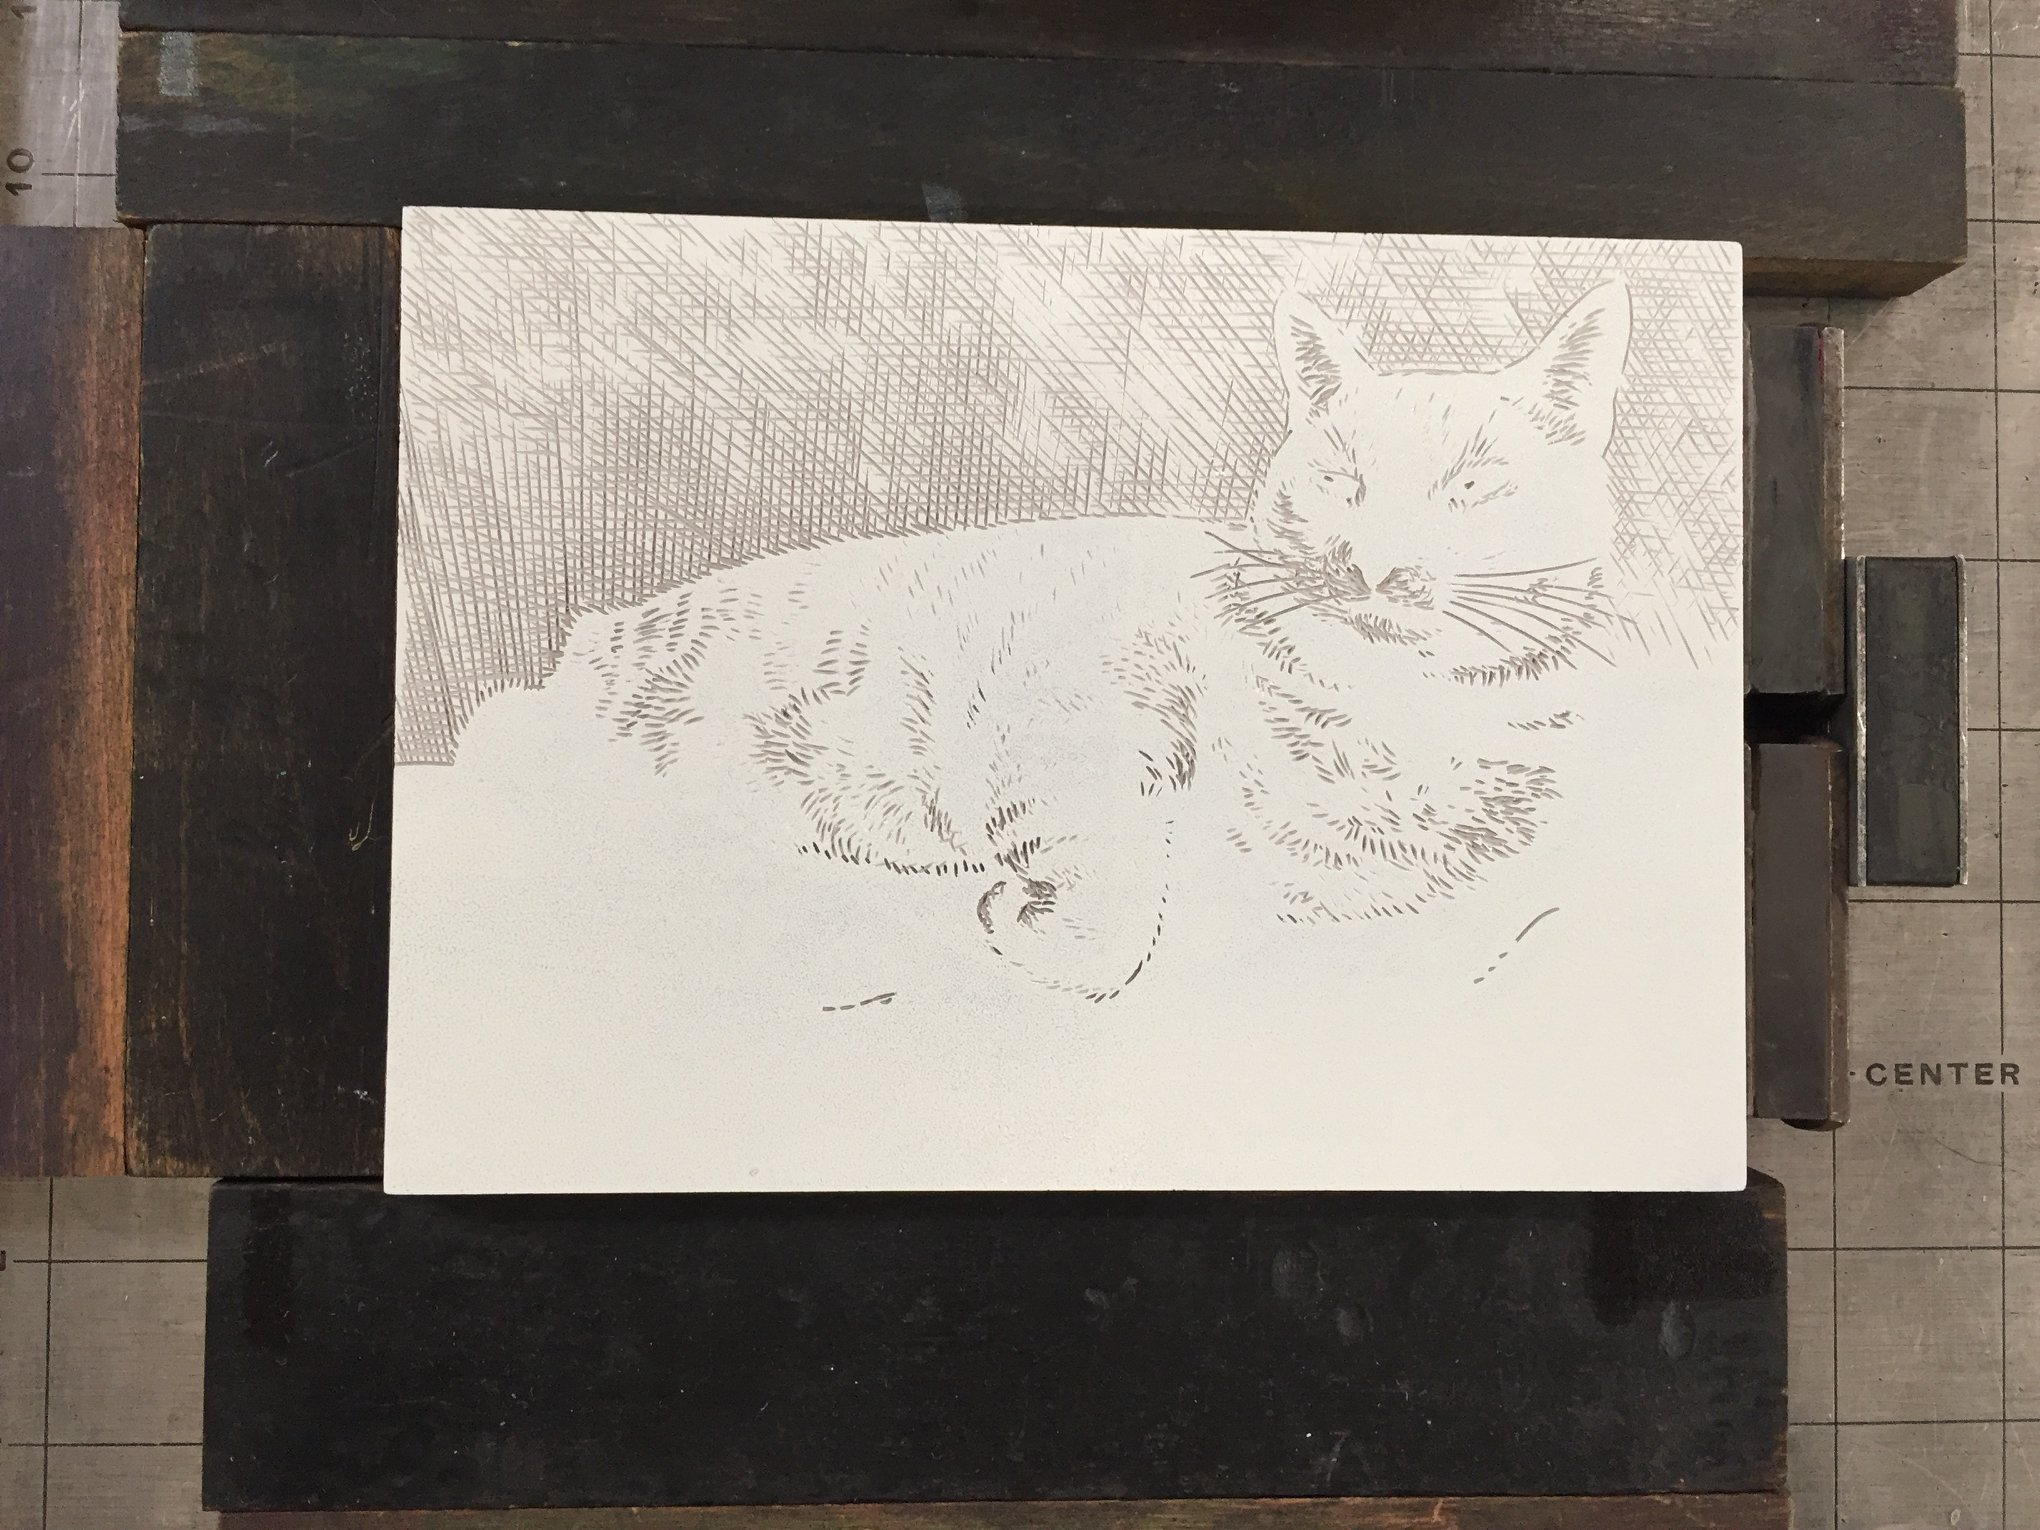 Here is the block carved, inked, and locked up in the press. It is ready for printing the second color. I have carved more of the wall behind Sliver and have expanded on the light areas in his fur. The ink color is slightly darker and more grey, but still very light.